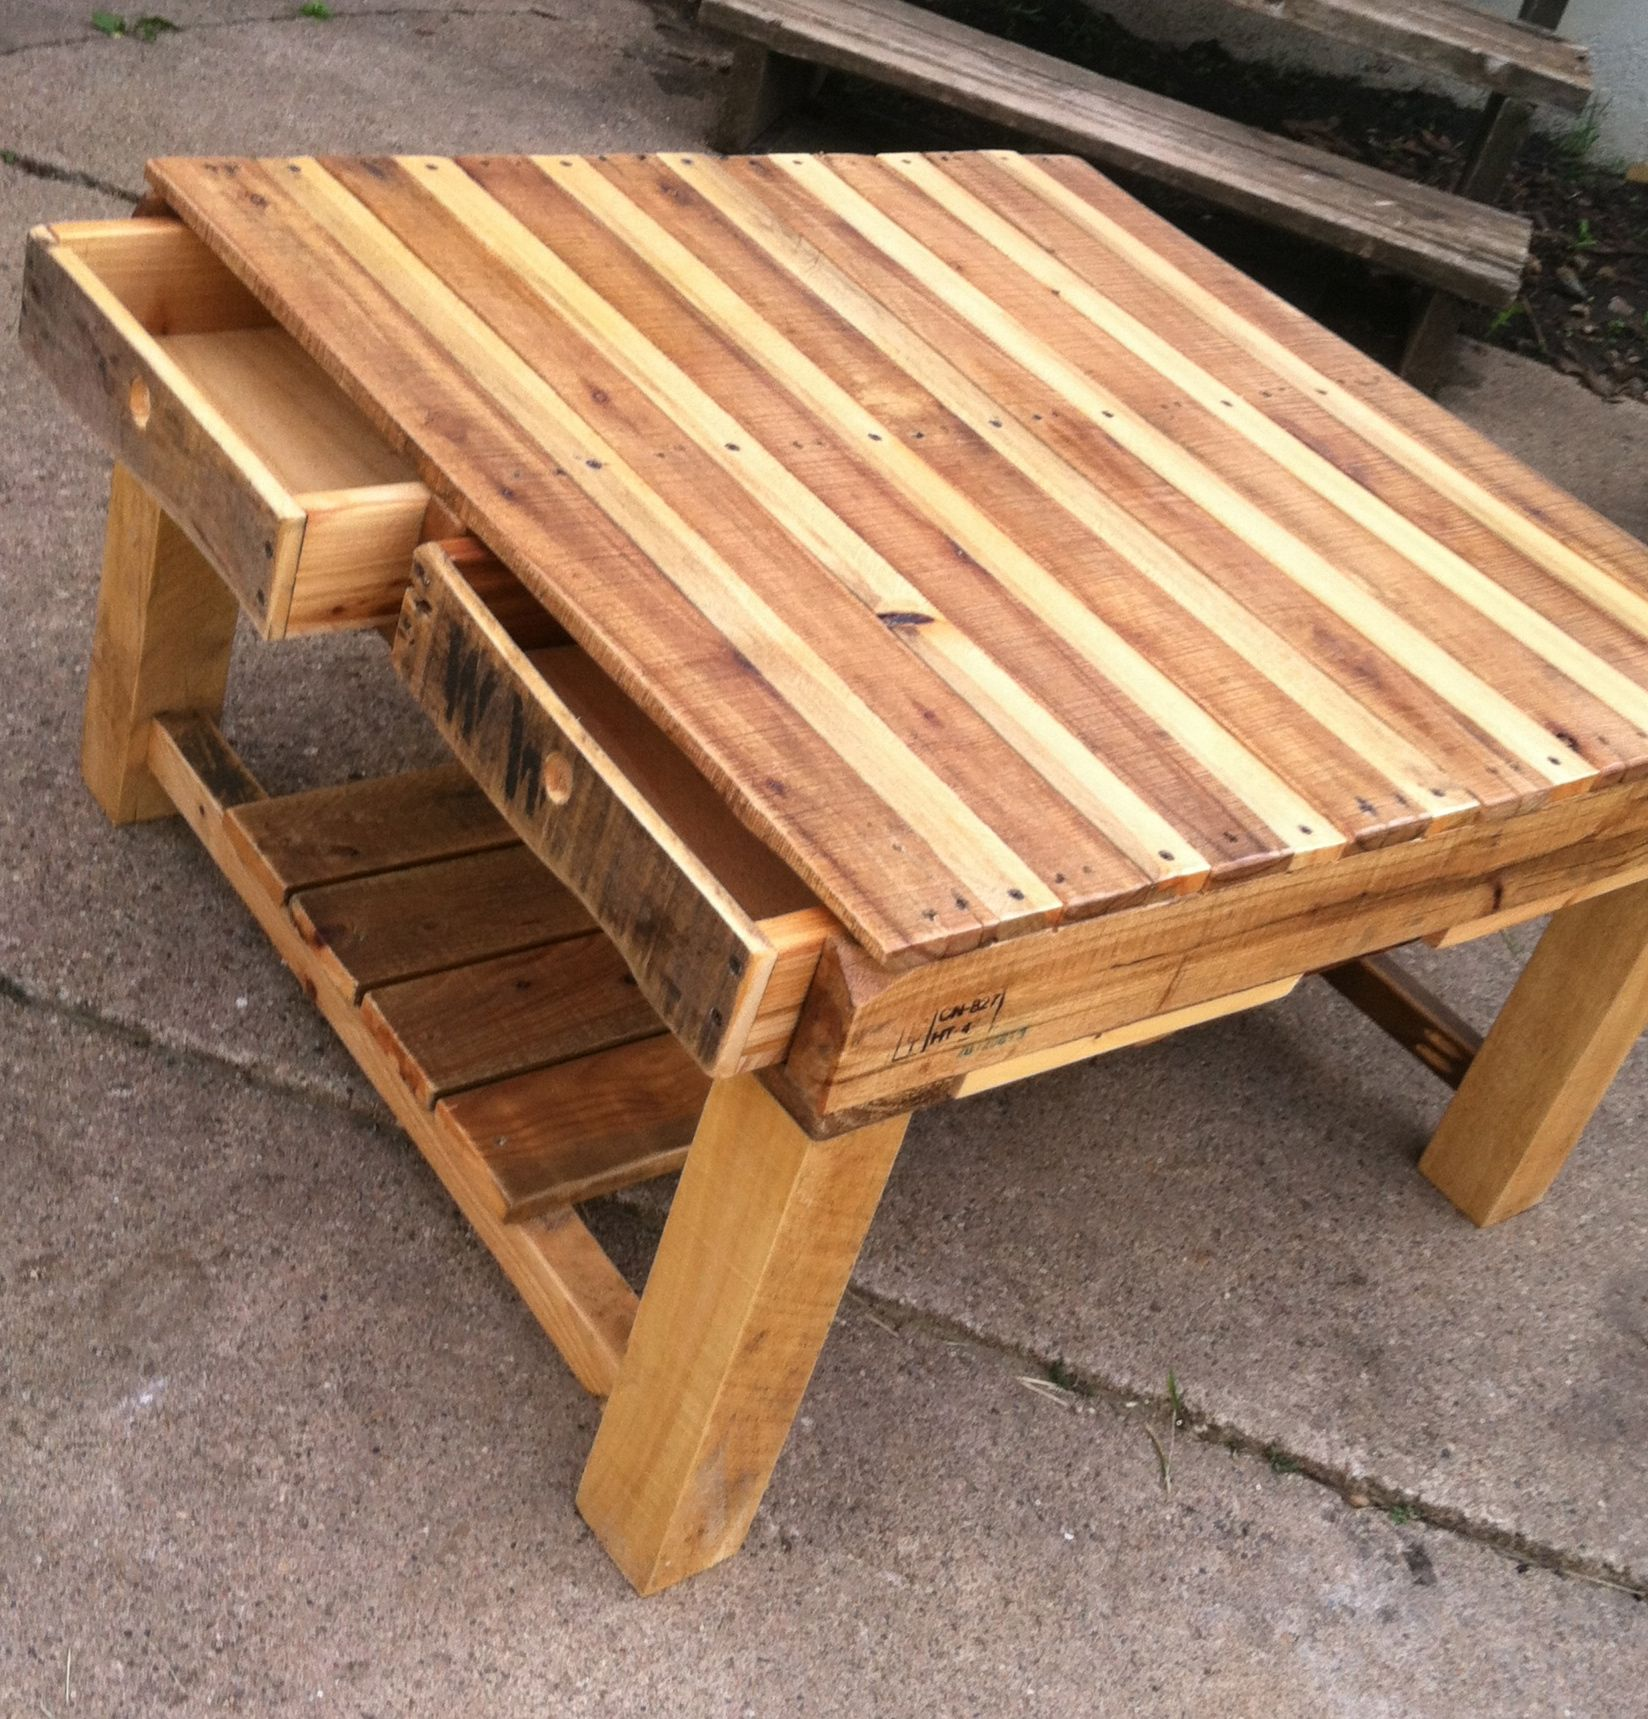 Pallet furniture coffee table - Find This Pin And More On Pallet Design Here Is A Coffee Table